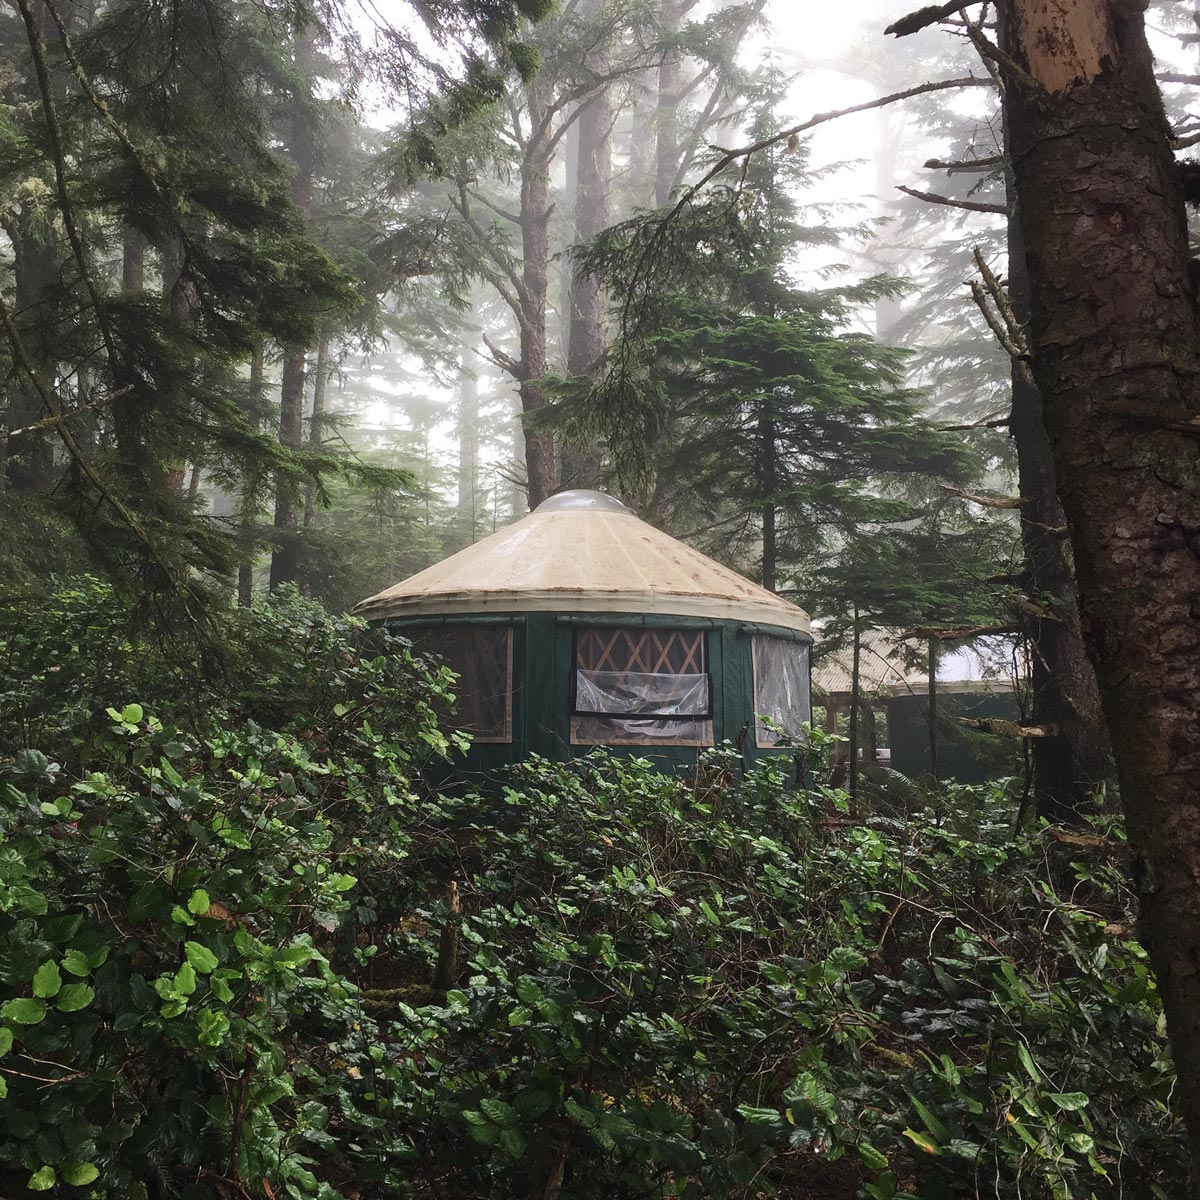 A hut in a rainy forest setting